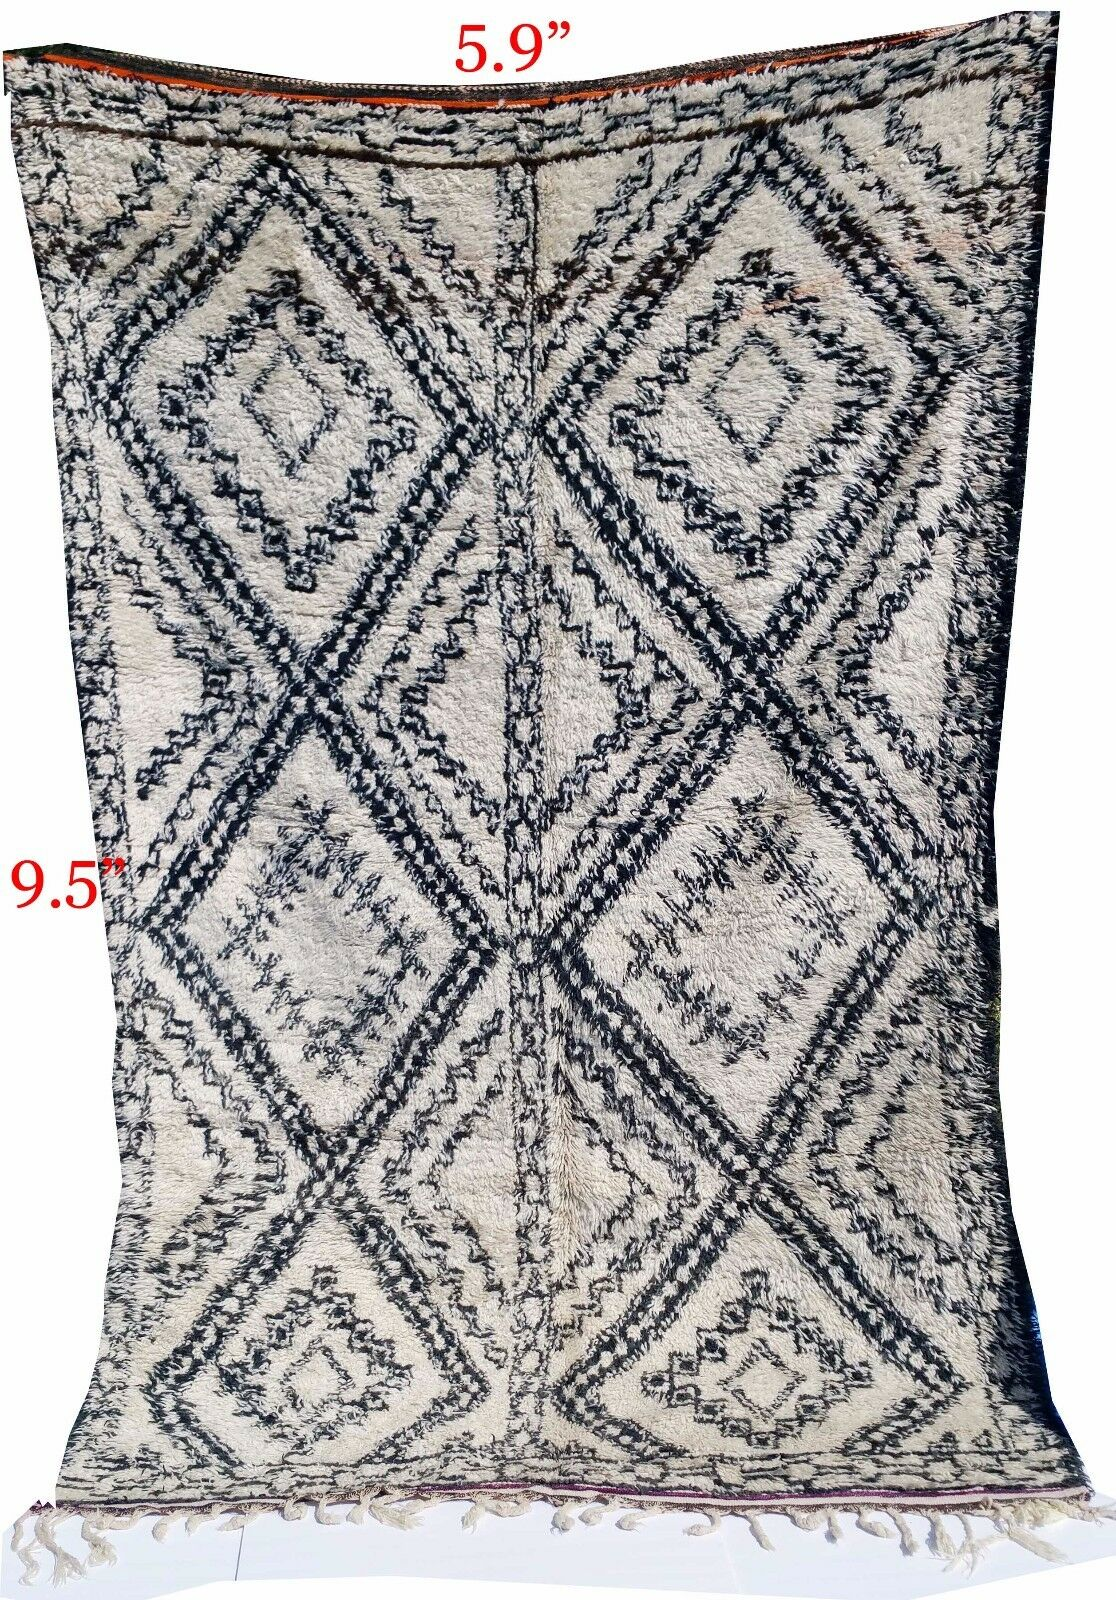 MGoldccan authentic Beni Beni Beni ourain knotted carpet Rug 100% Handmade 9.5ft x5.9ft 3e0773